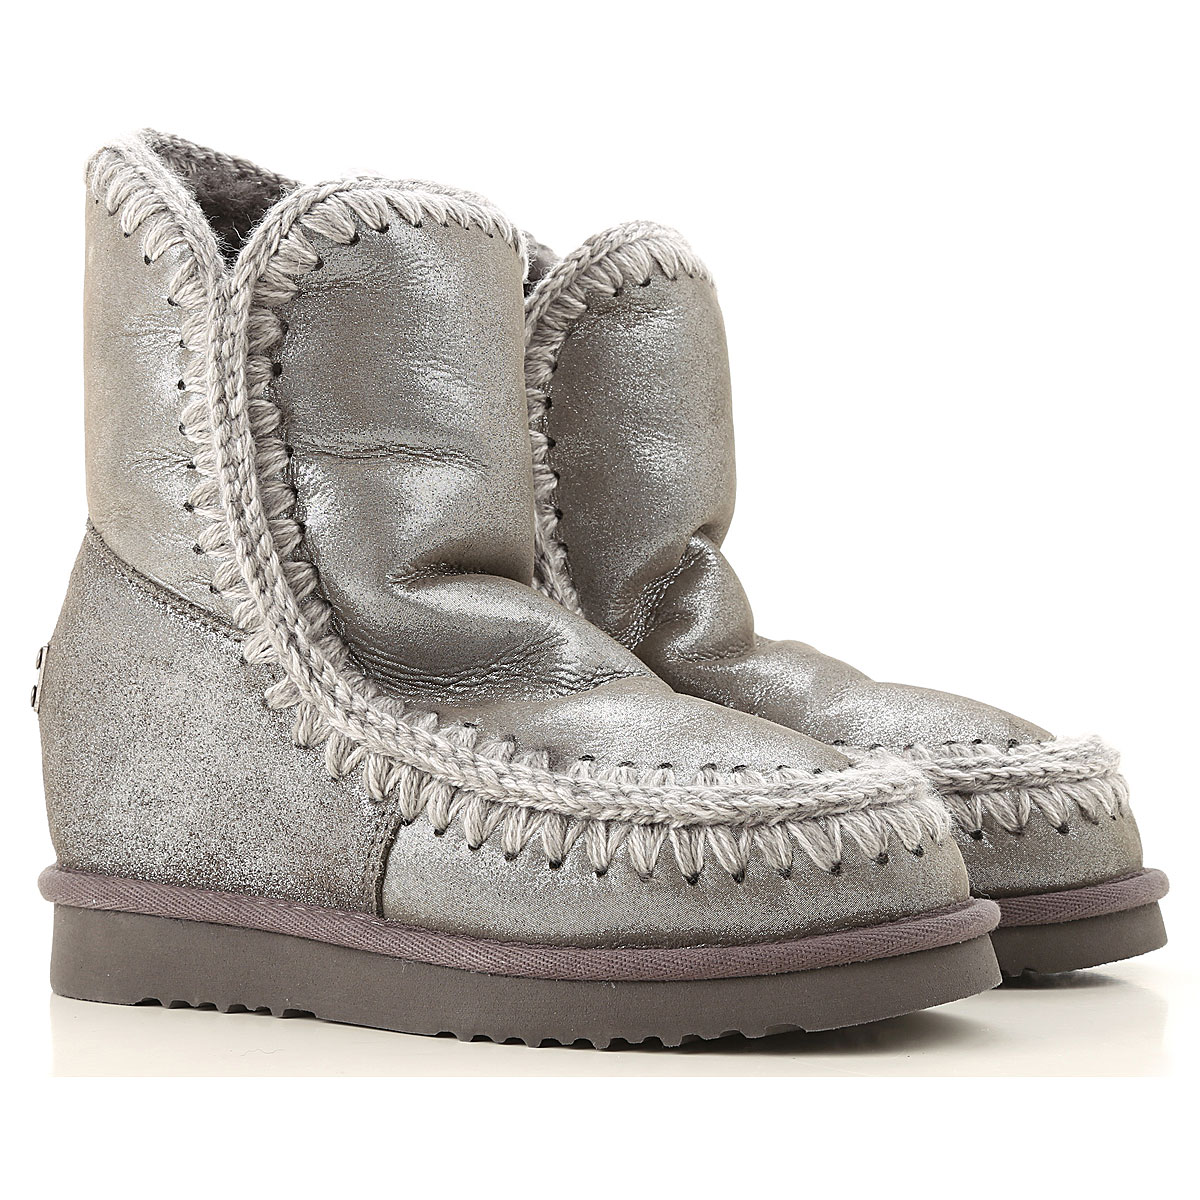 Mou Boots for Women, Booties On Sale, Gray Lurex, Leather, 2019, Eu 35 EUR 40 - UK 7 - USA 9.5